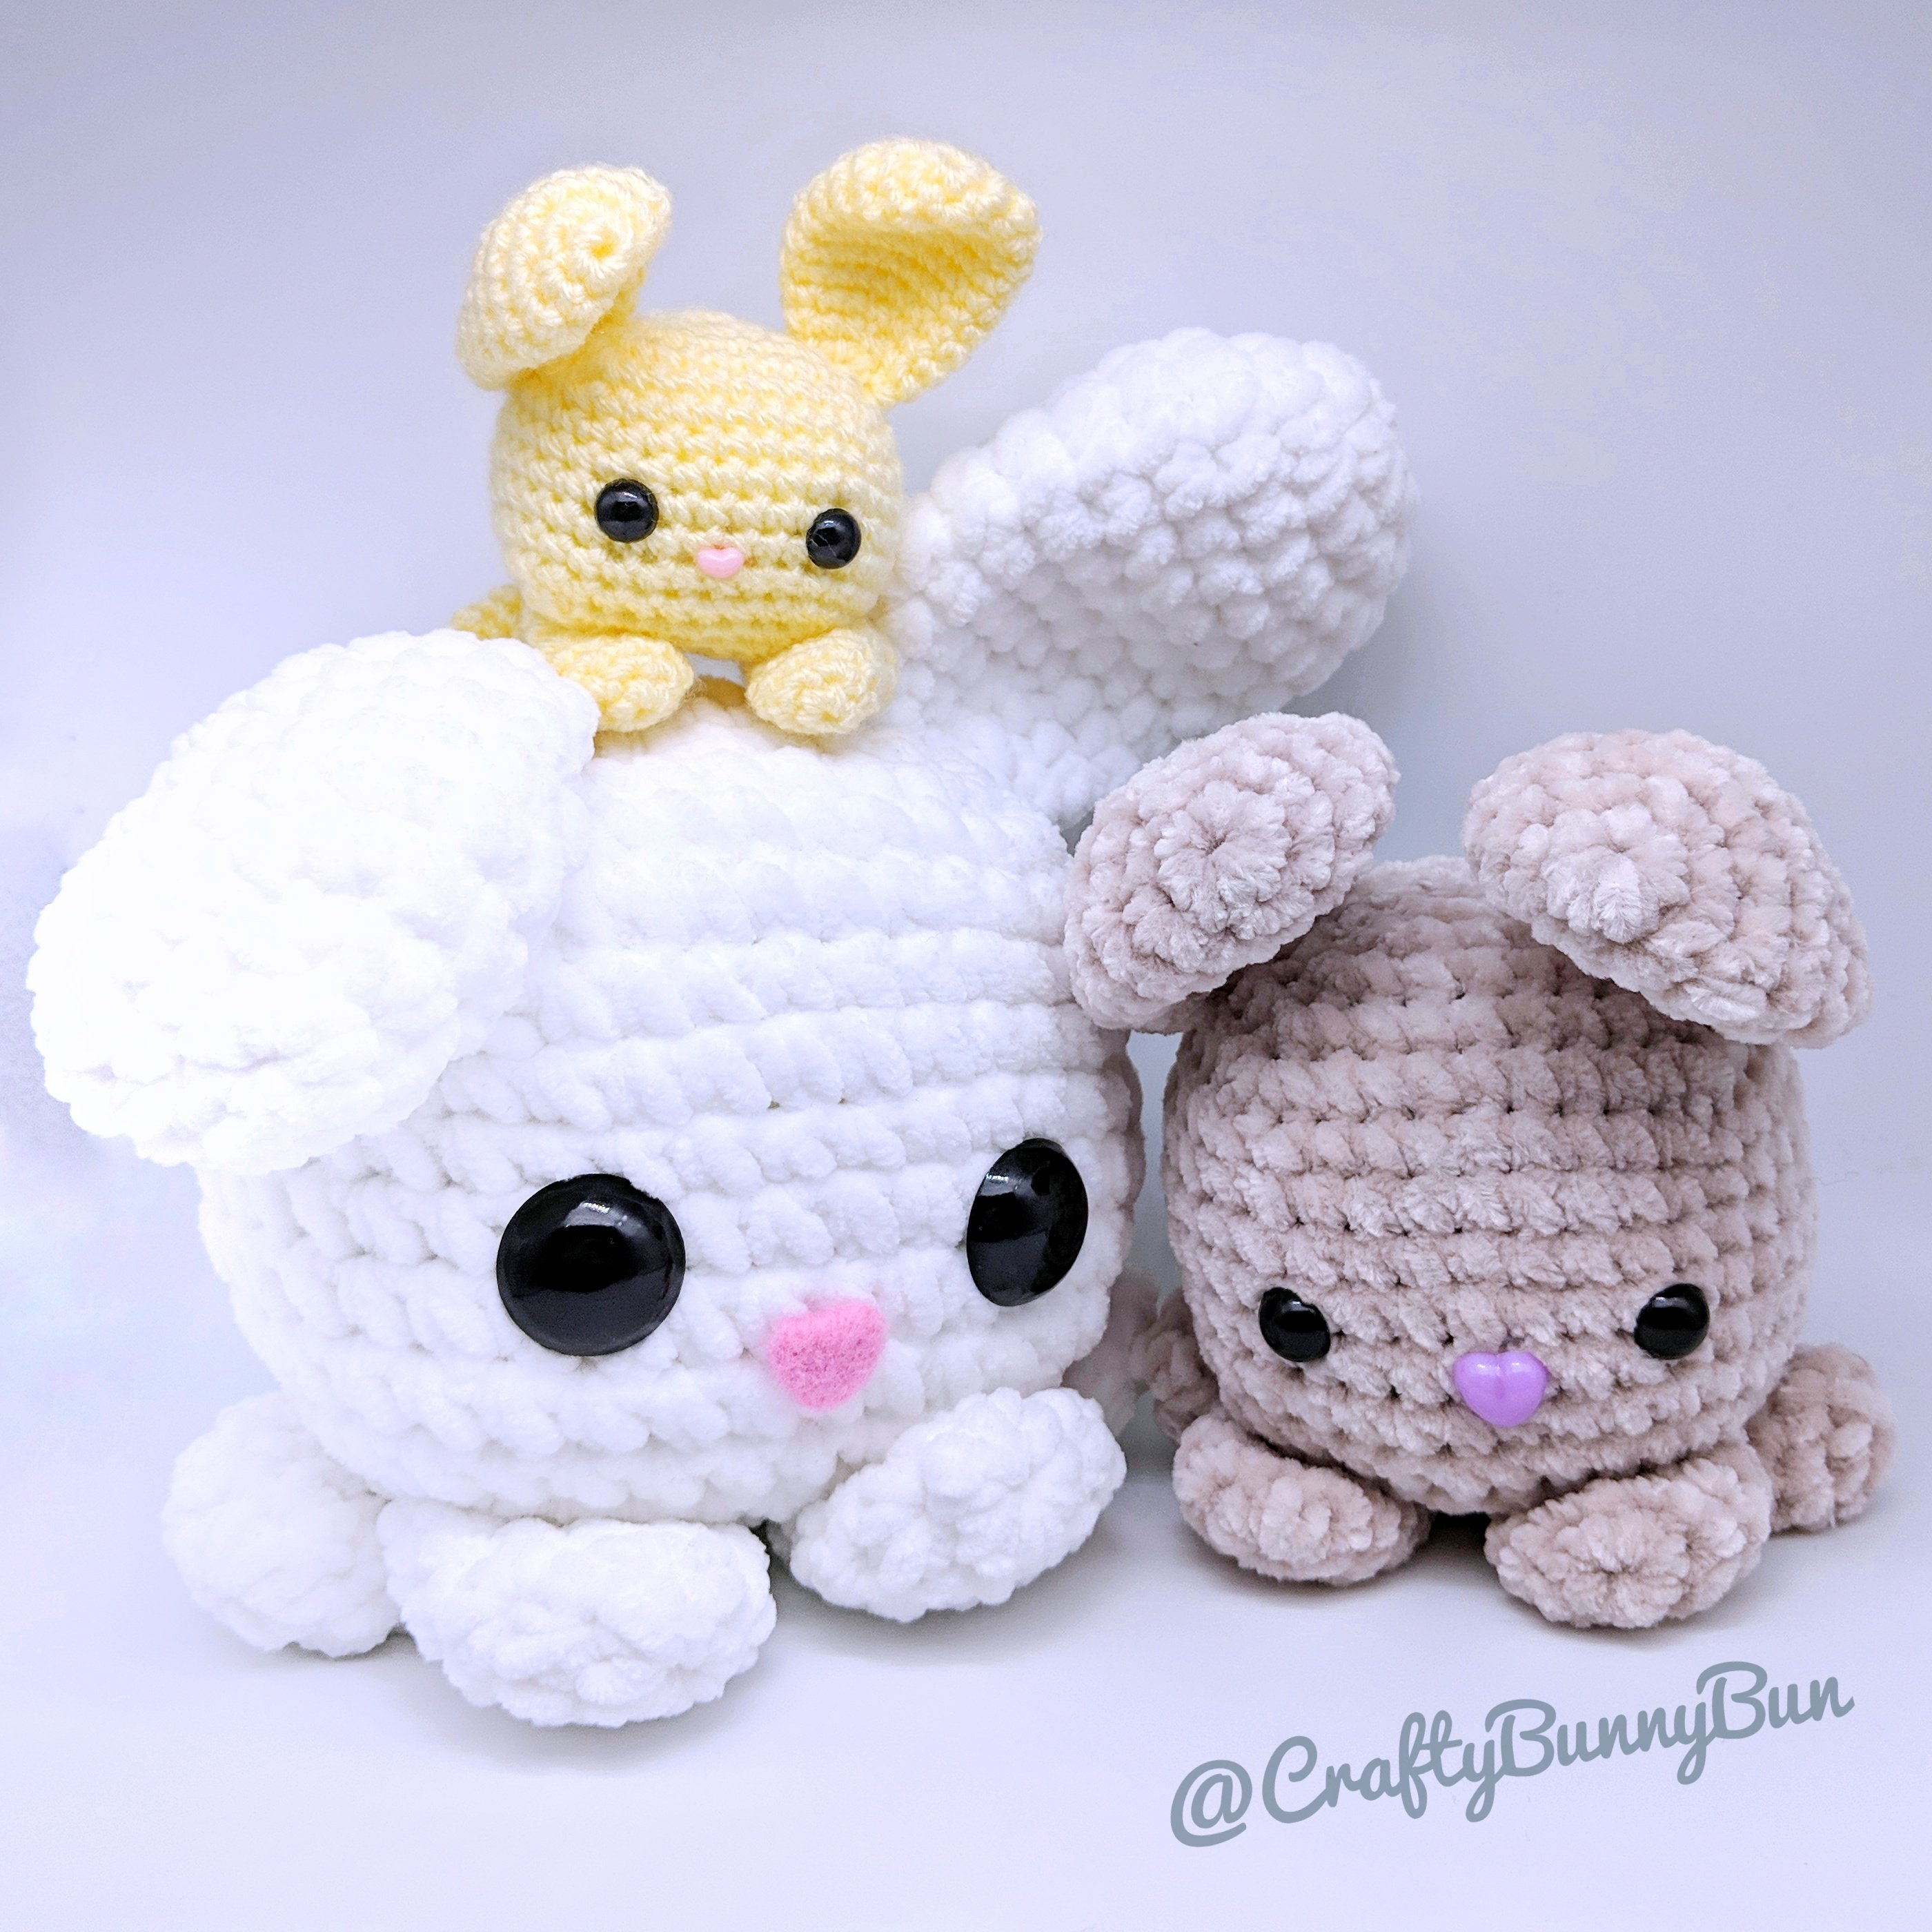 Amigurumi Crochet Bunny Patterns - Amigurumi Patterns Tutorials | 2800x2800